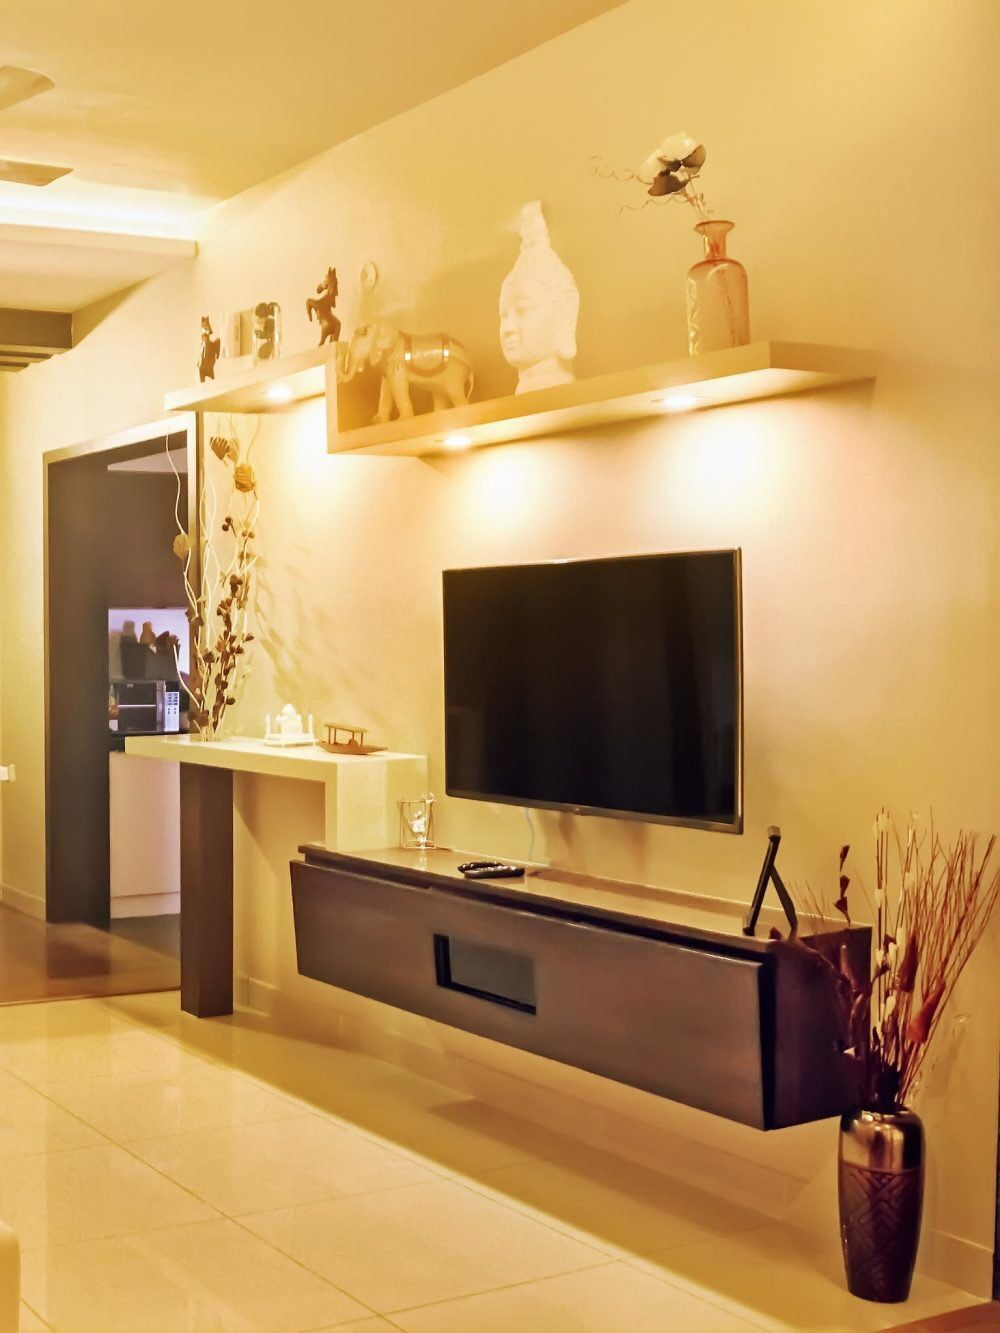 Pin by Sudipta Das on Etternia Sudipta | Pinterest | TV unit, TVs ...